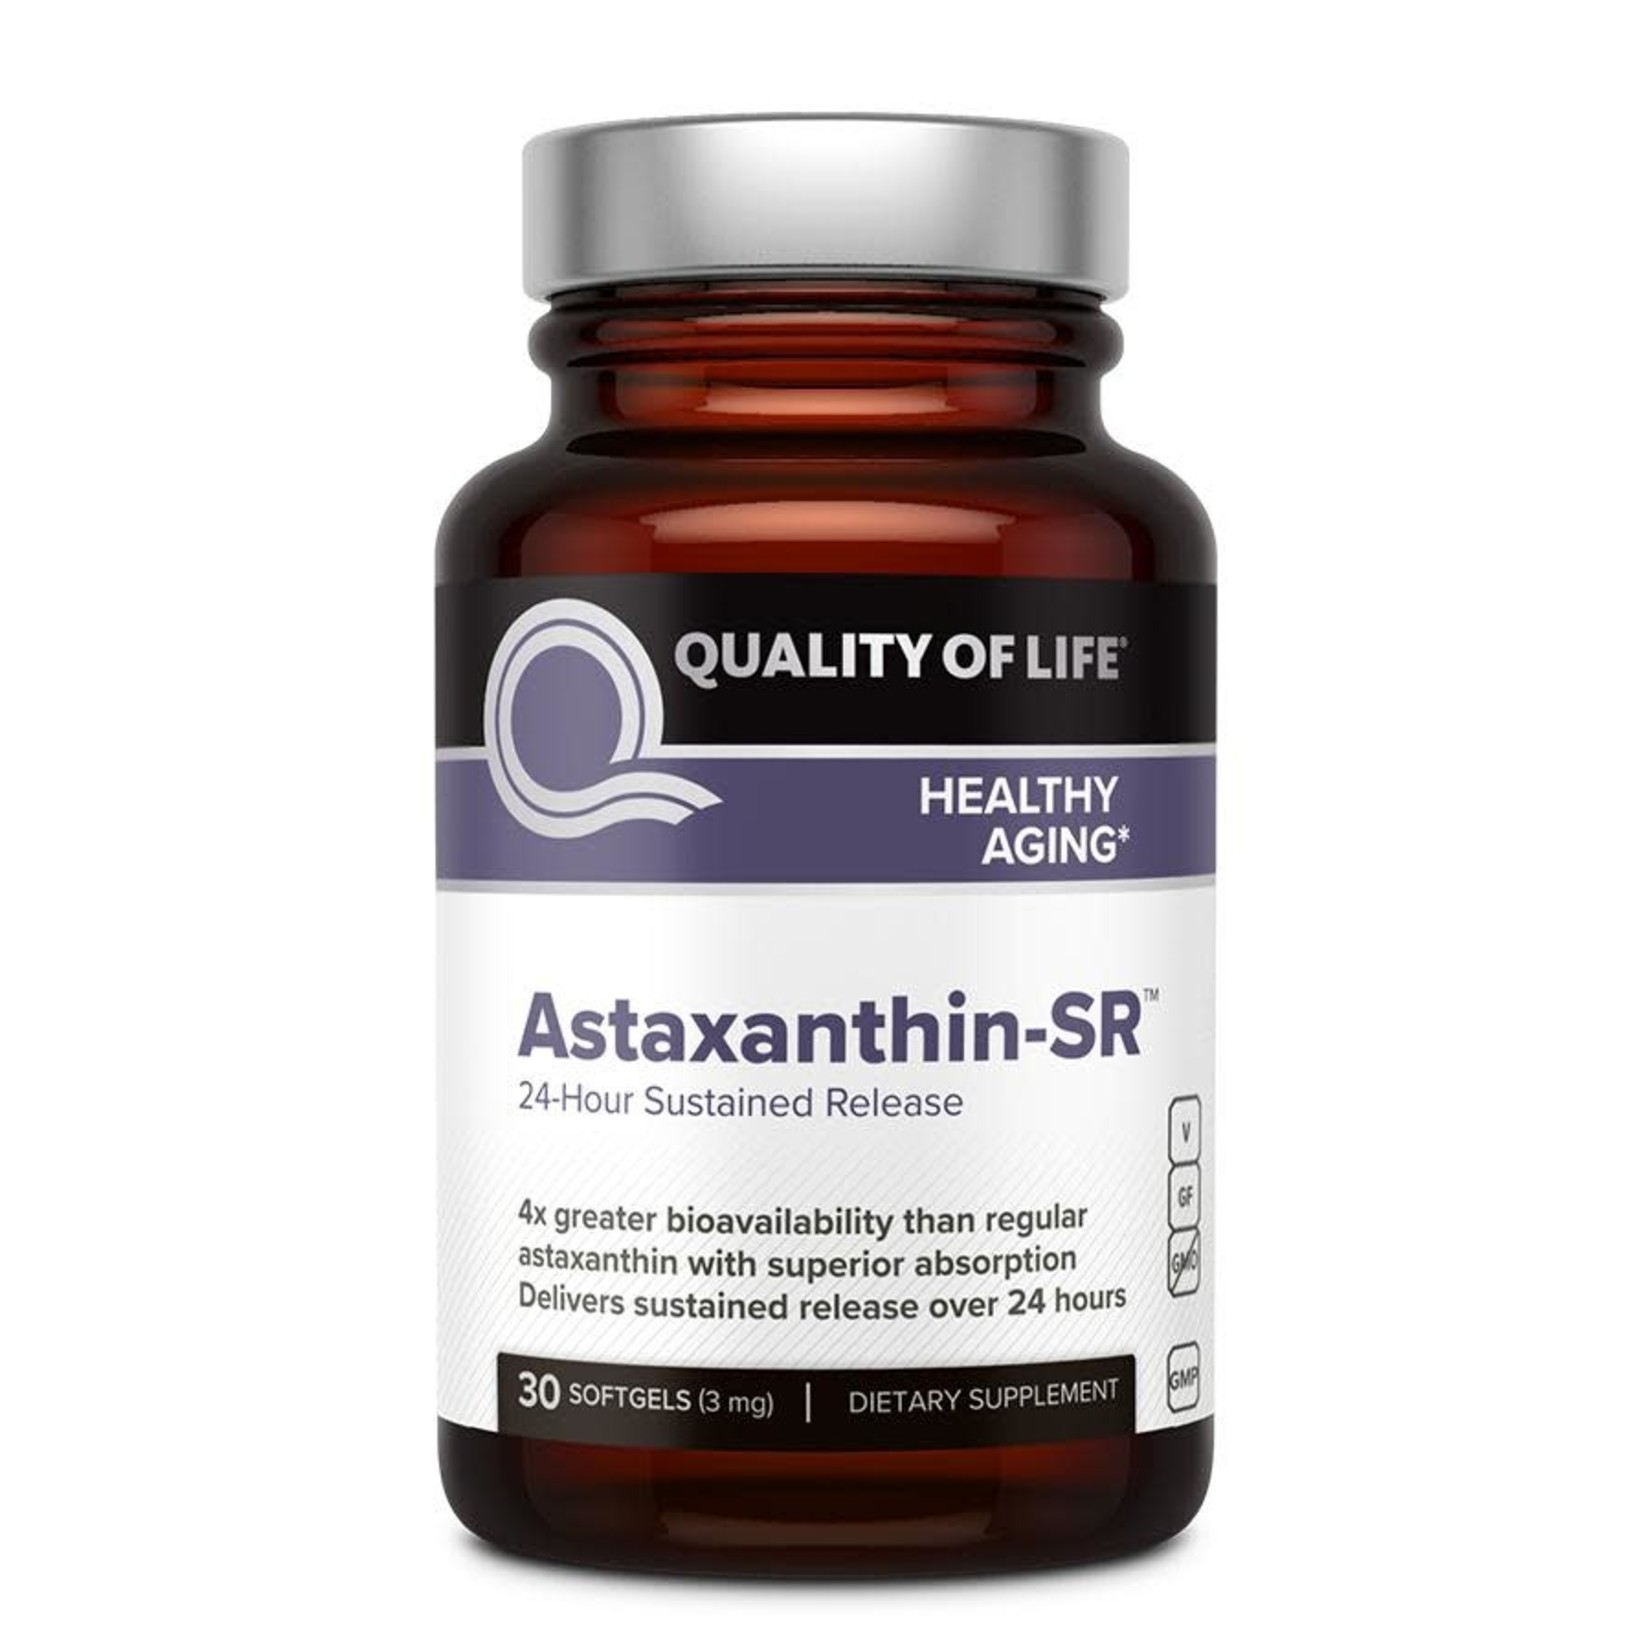 Quality of Life QOL Astaxanthin Sustained Release 30 softgels